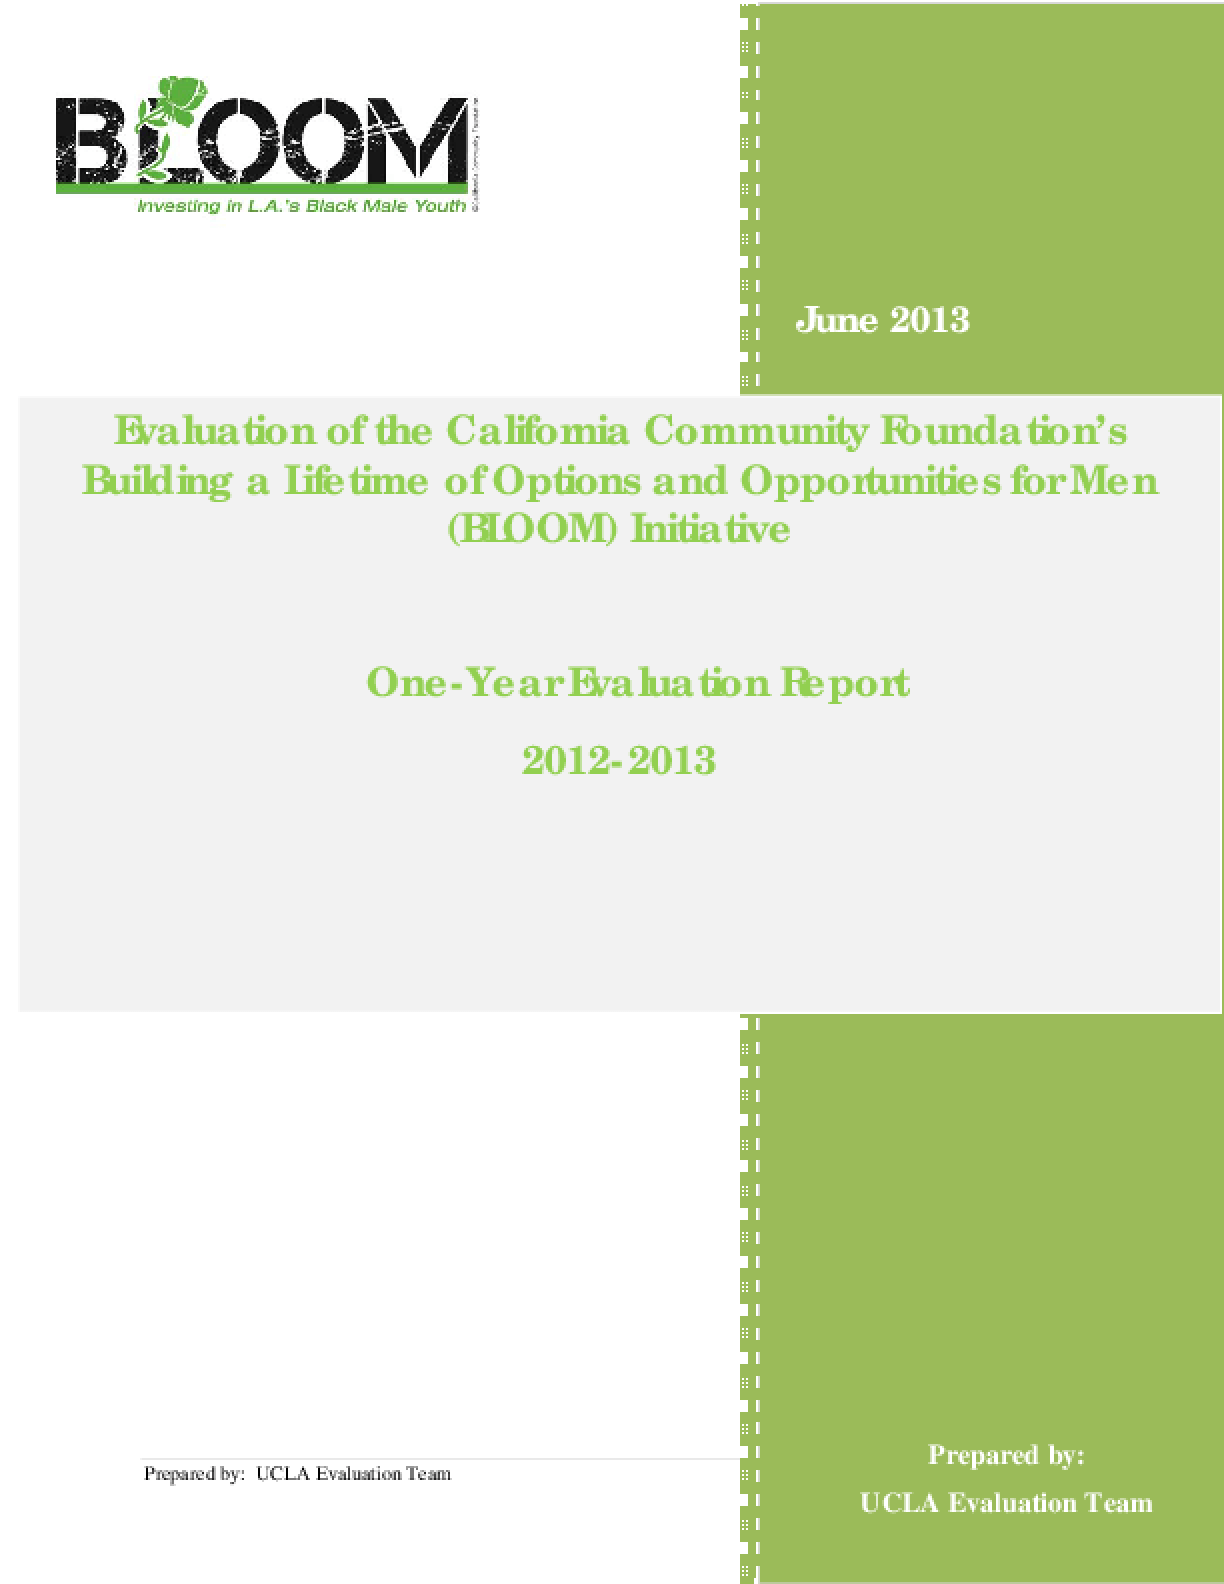 Evaluation of the California Community Foundation's Building a Lifetime of Options and Opportunities for Men (BLOOM) Initiative: One Year Evaluation Report